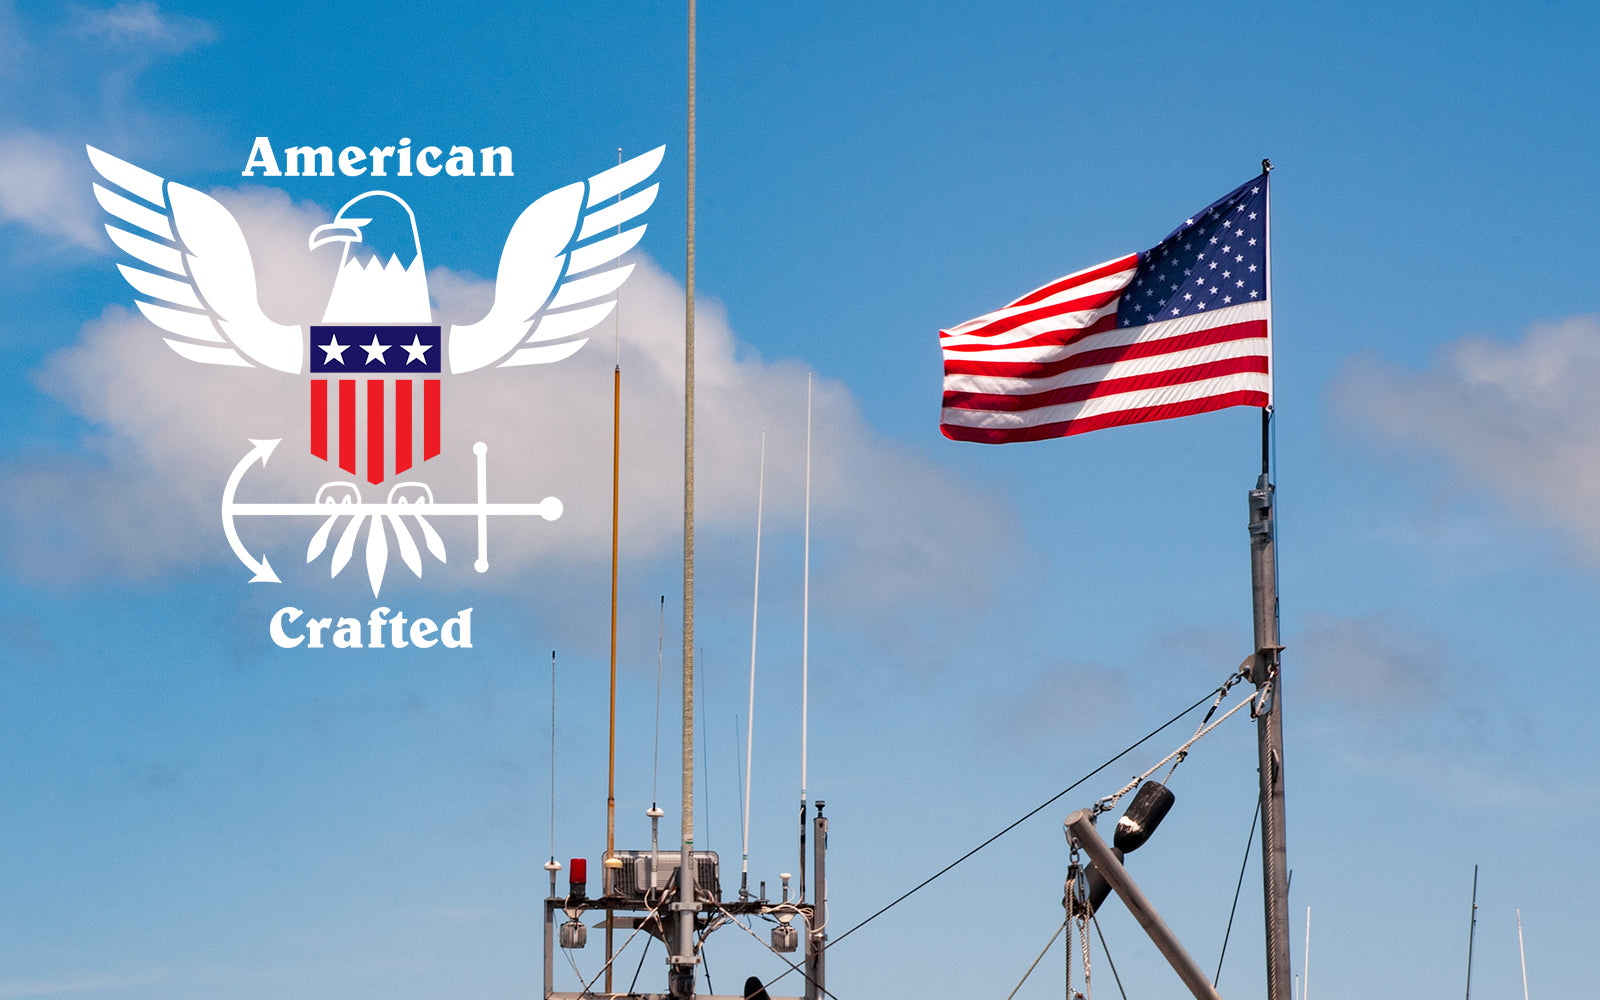 Why Our Saltwater Gear is American Crafted